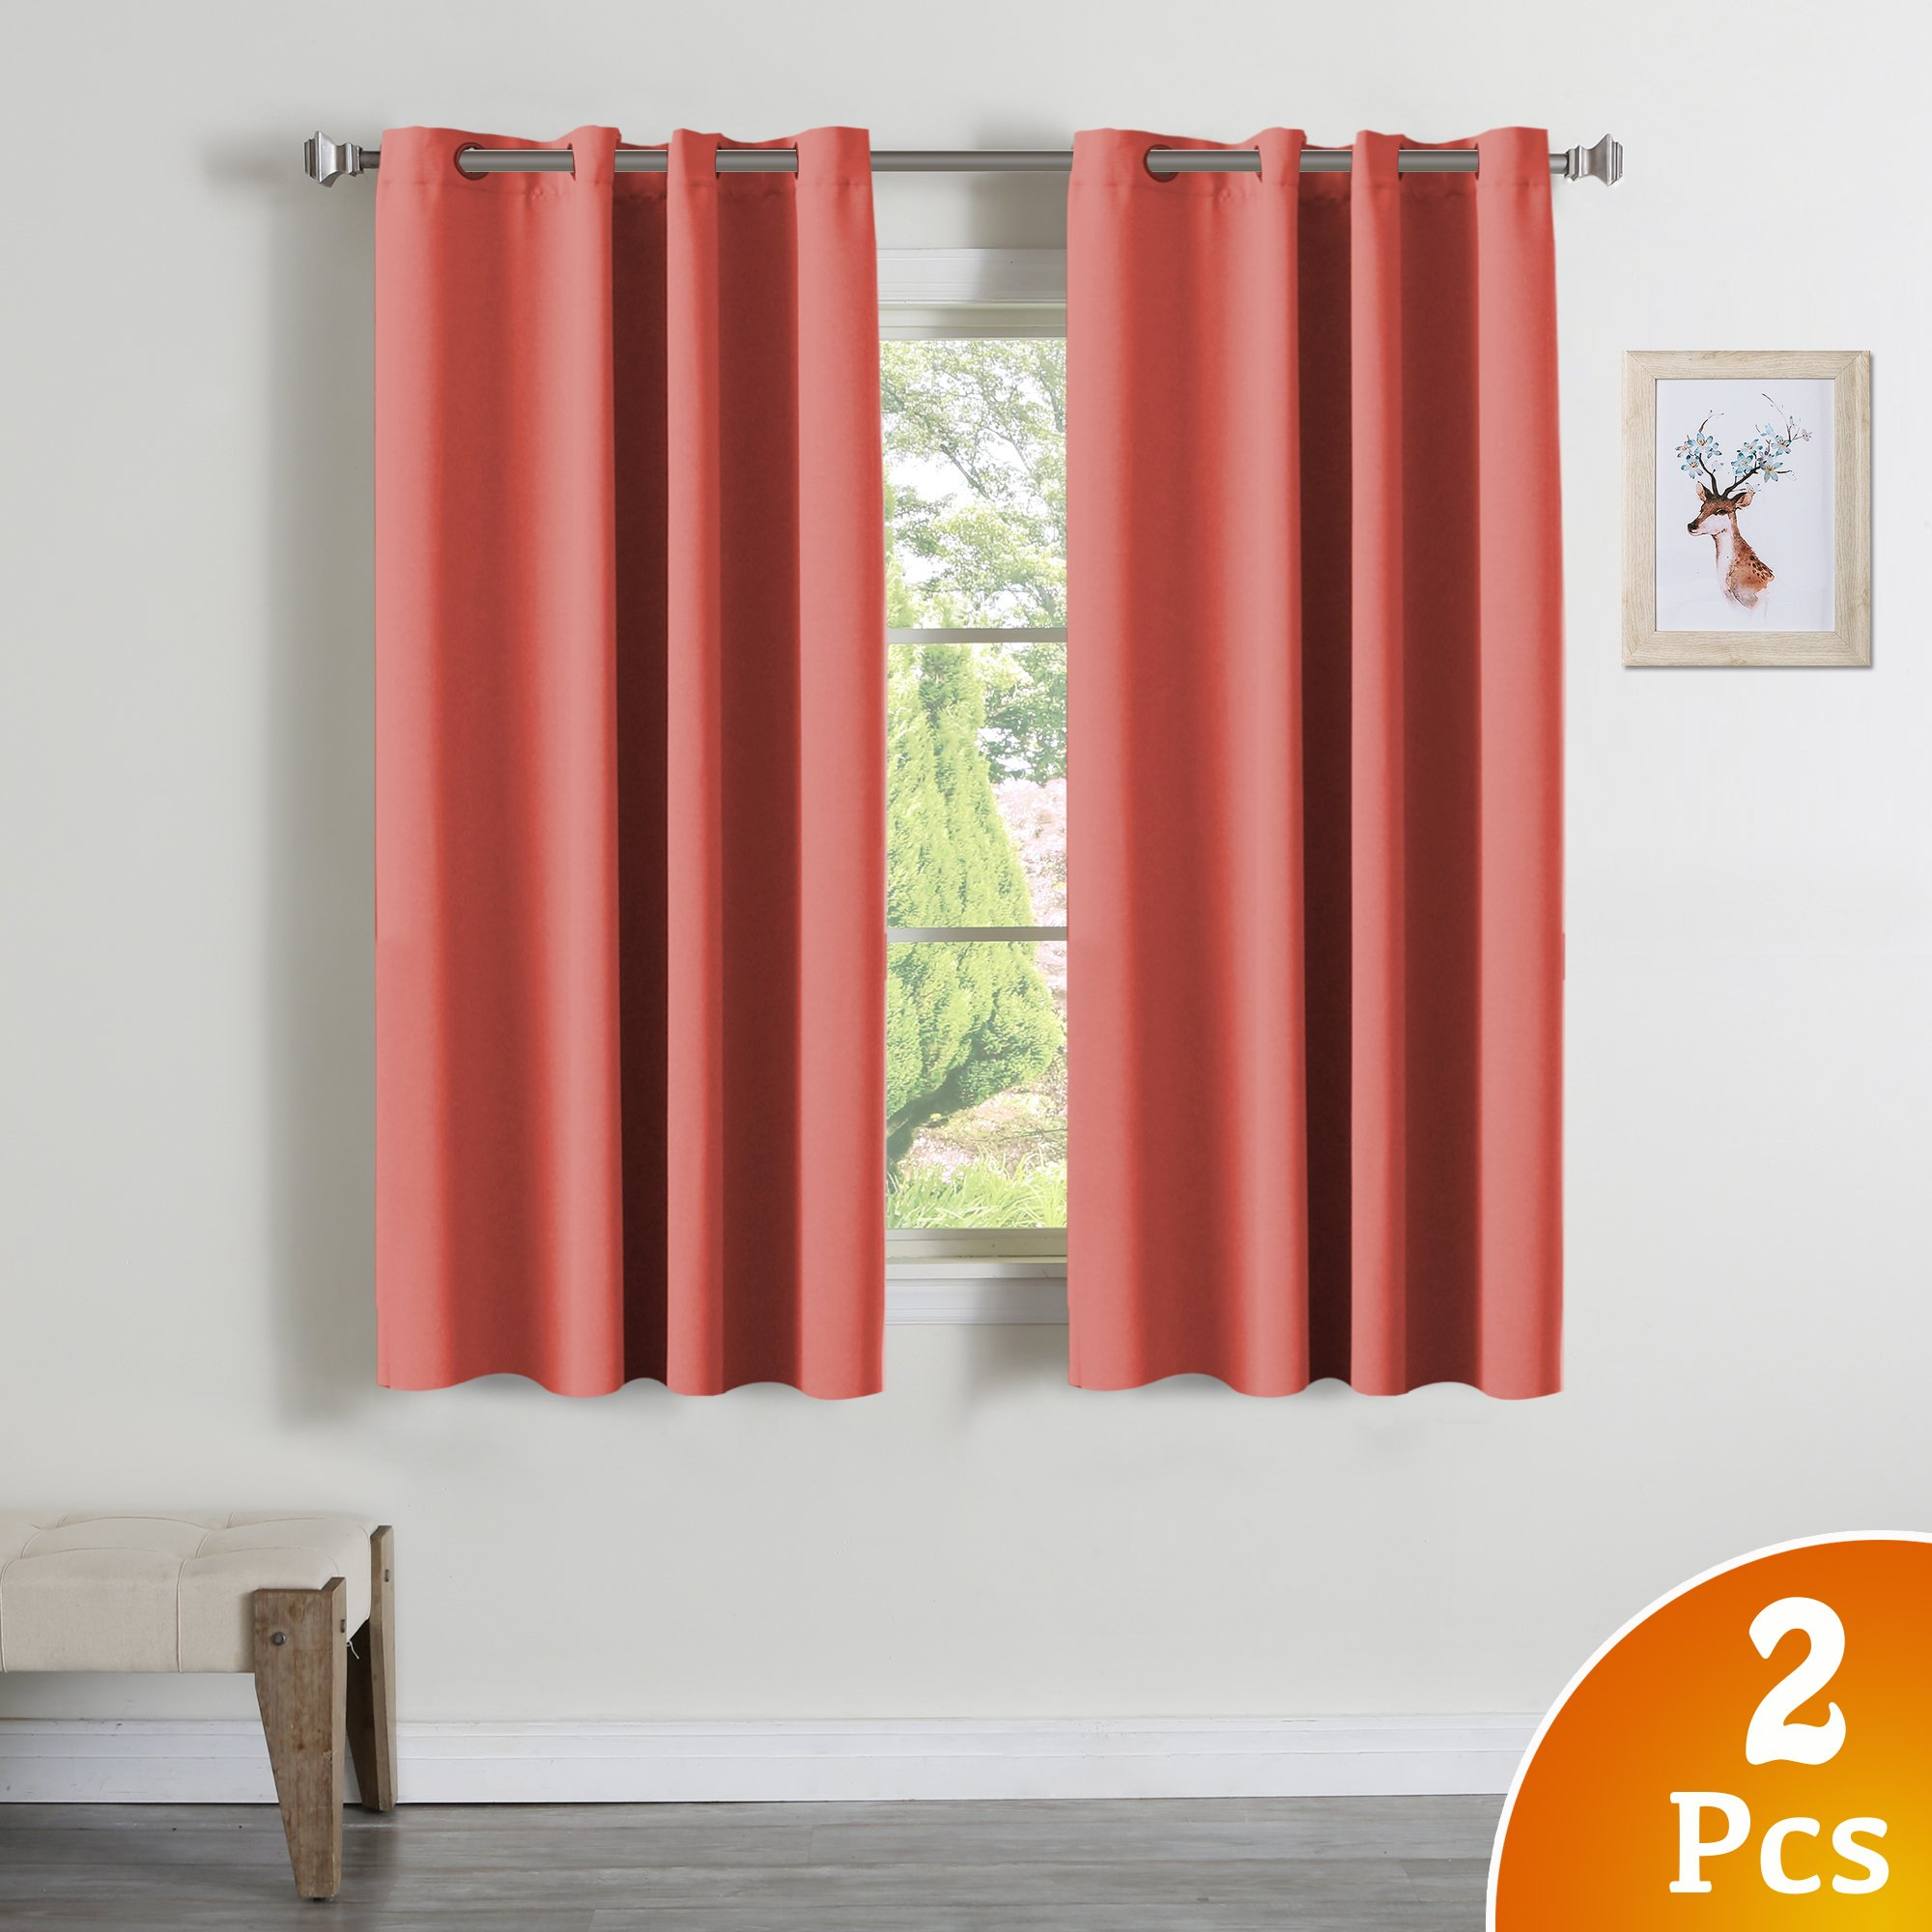 Turquoize 99% Blackout Curtains Energy Efficient Solid 2 Panels Thermal Insulated Girls Room Curtain Set, Coral Curtain Drapes, Each Panel 52'' W x 63'' L, Grommet